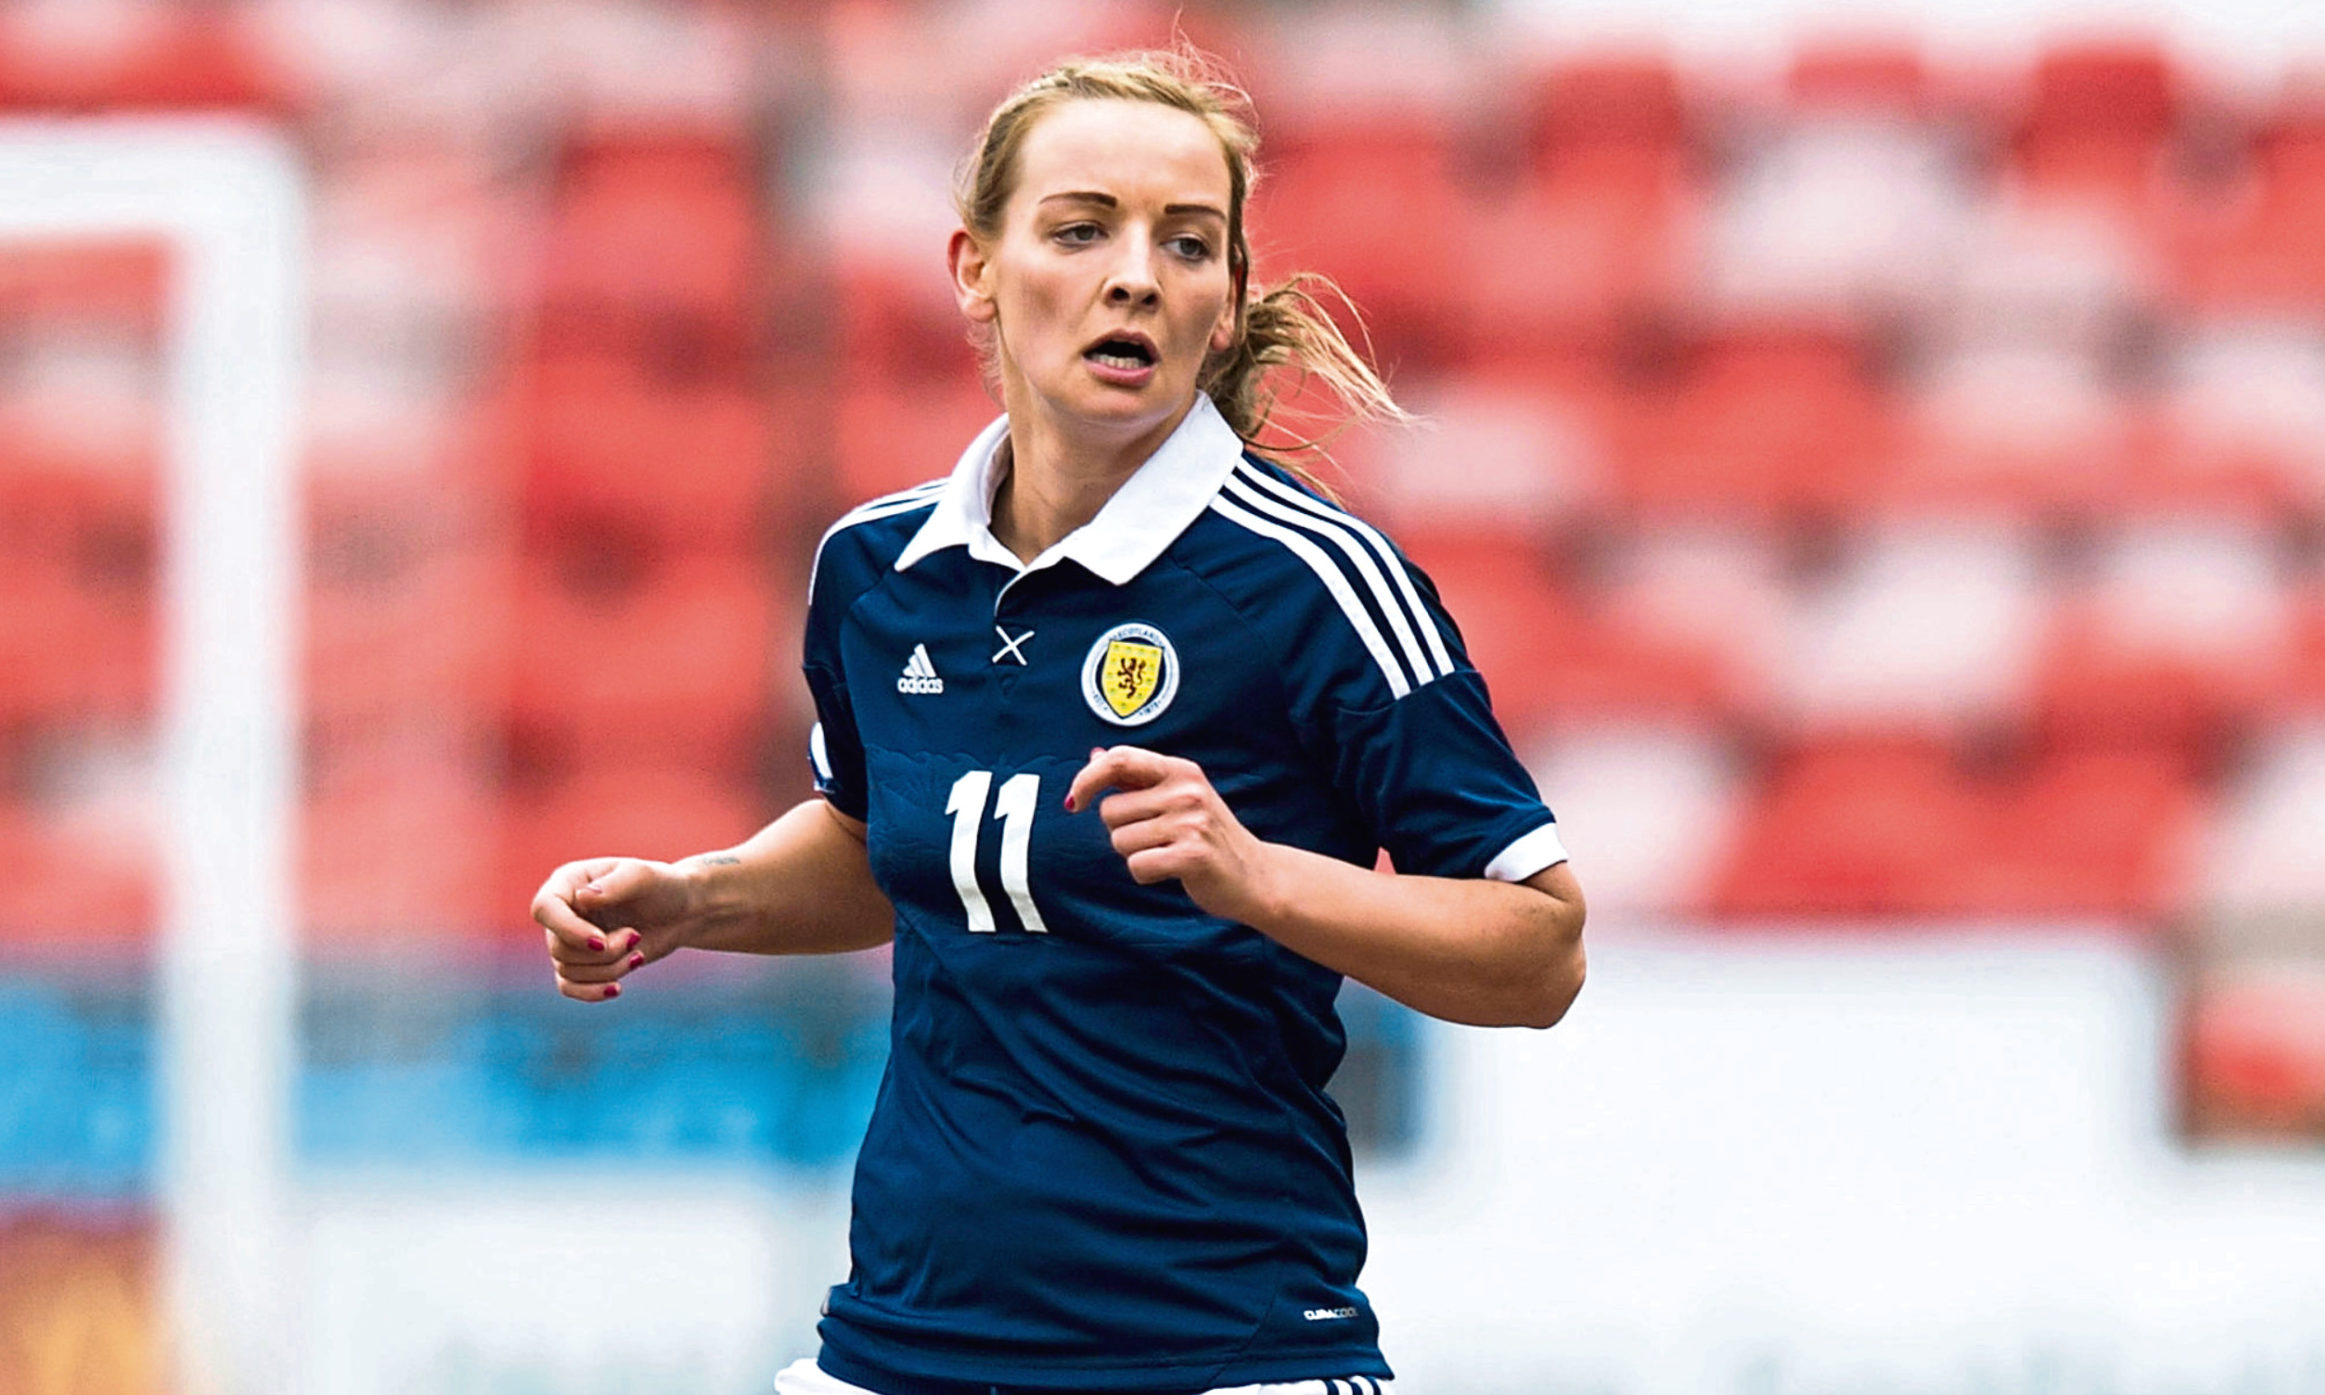 sale retailer 870f1 6fa23 Former Scotland star Suzanne Winters: There's no way Luka ...